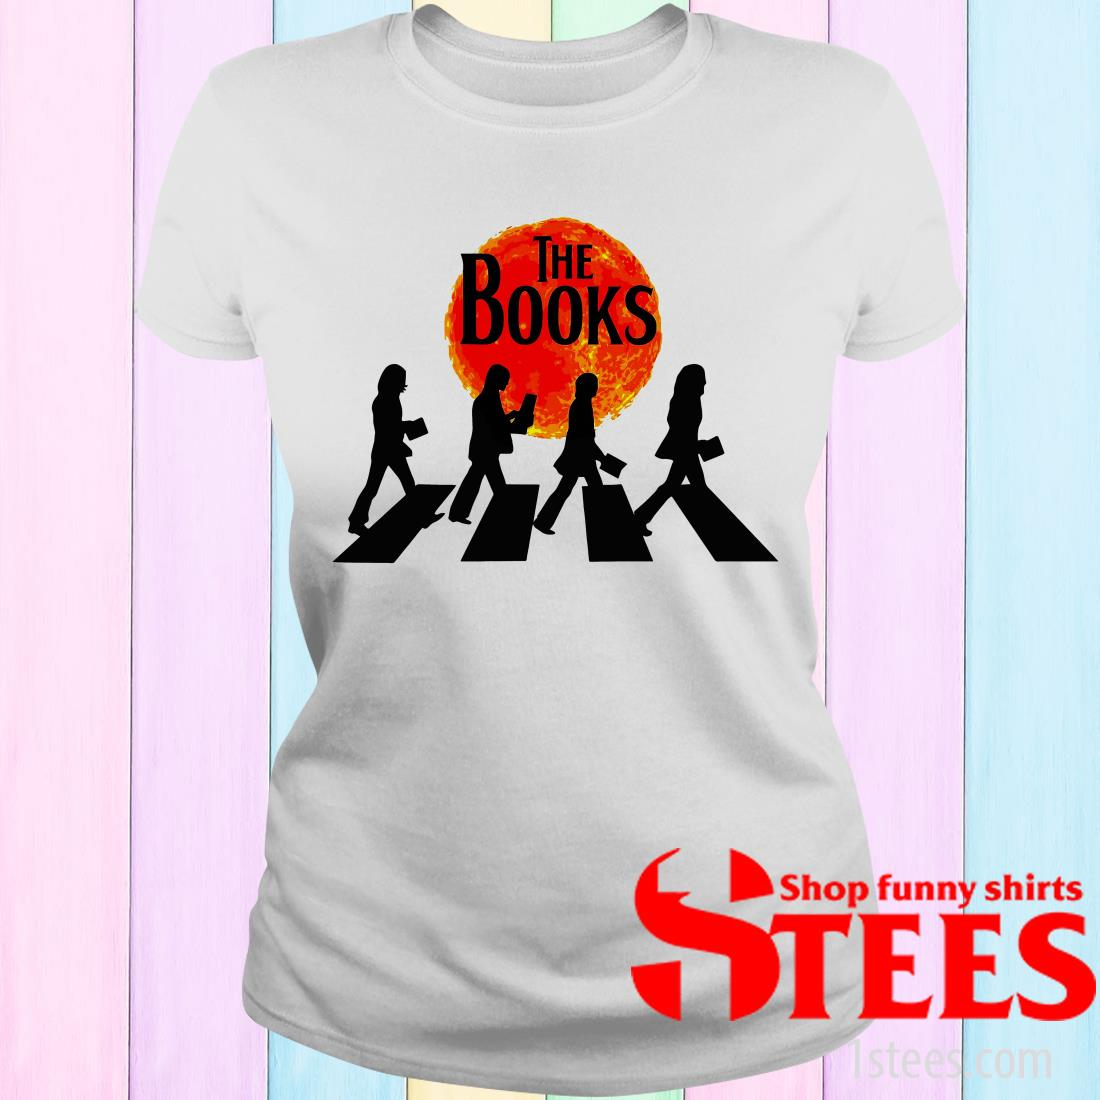 Abbey Road The Books Women's T-Shirt